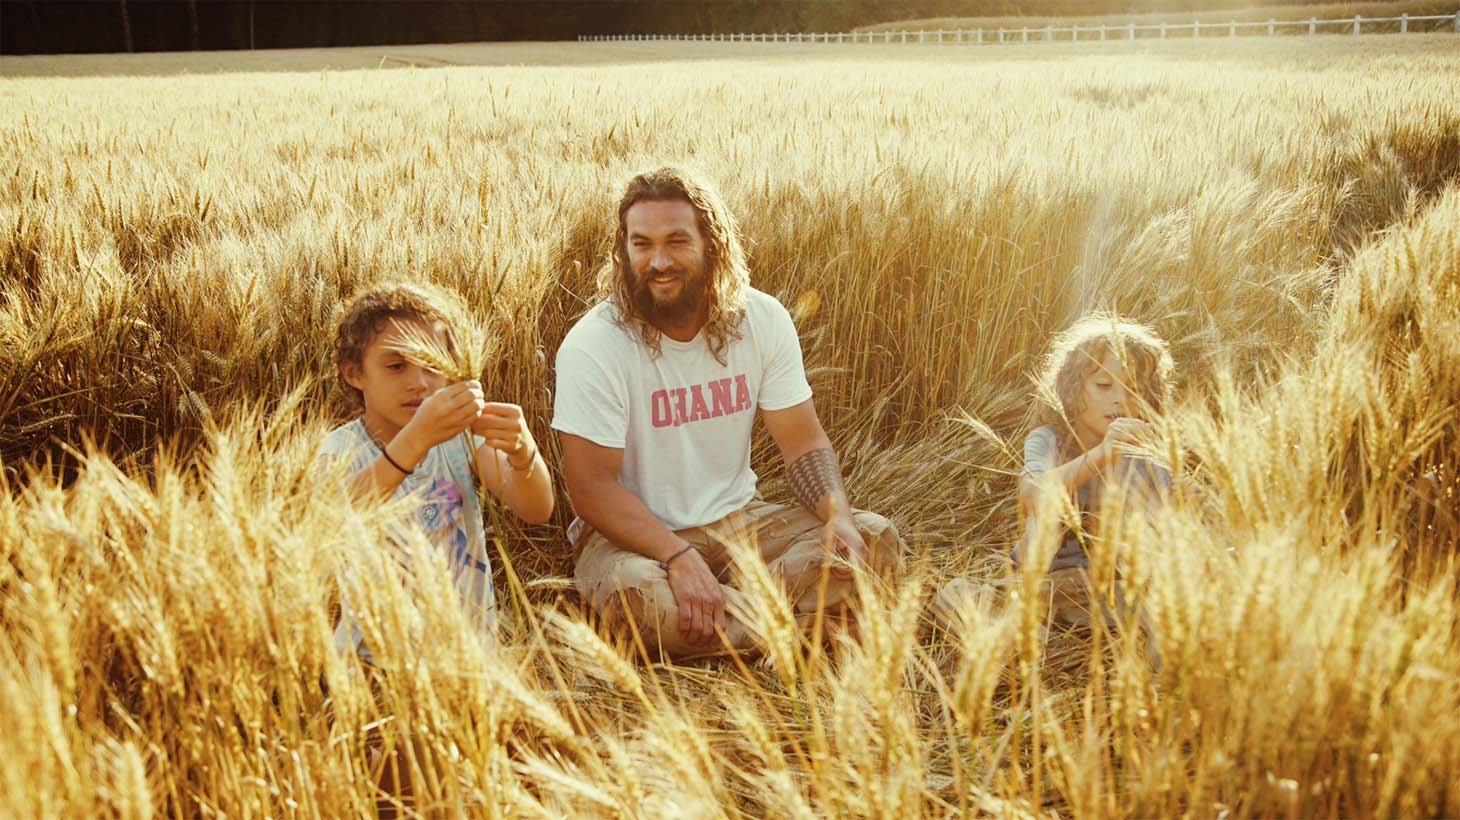 Jason Momoa sits in a field with his kids, who provide him with the inspiration to be the best father he can be.